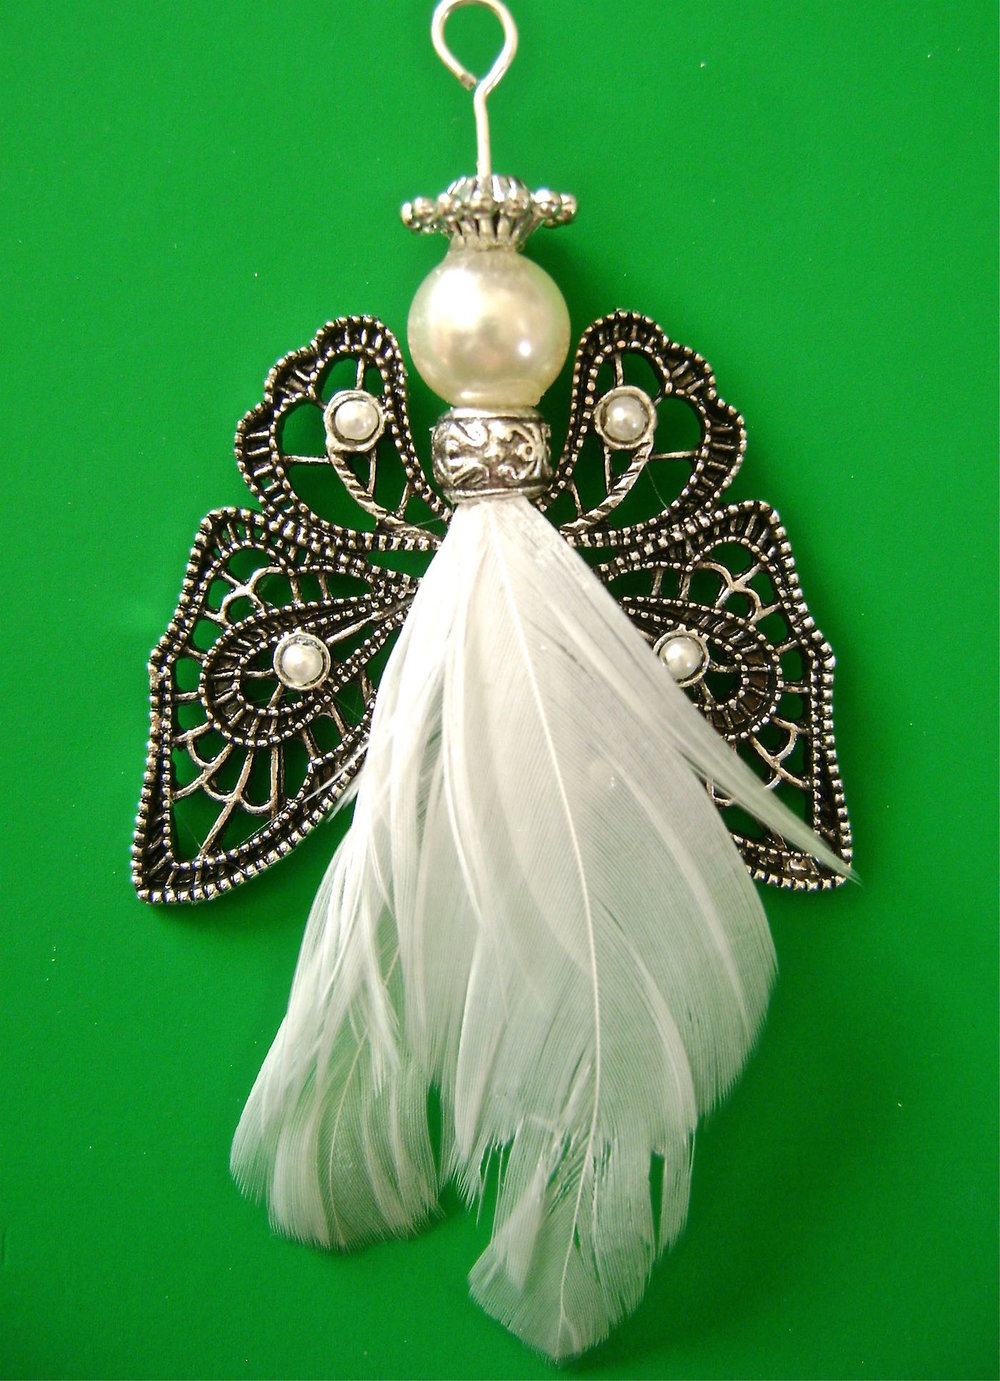 "Ornament measures 3"" long from the angel's crown to the feather bottom."